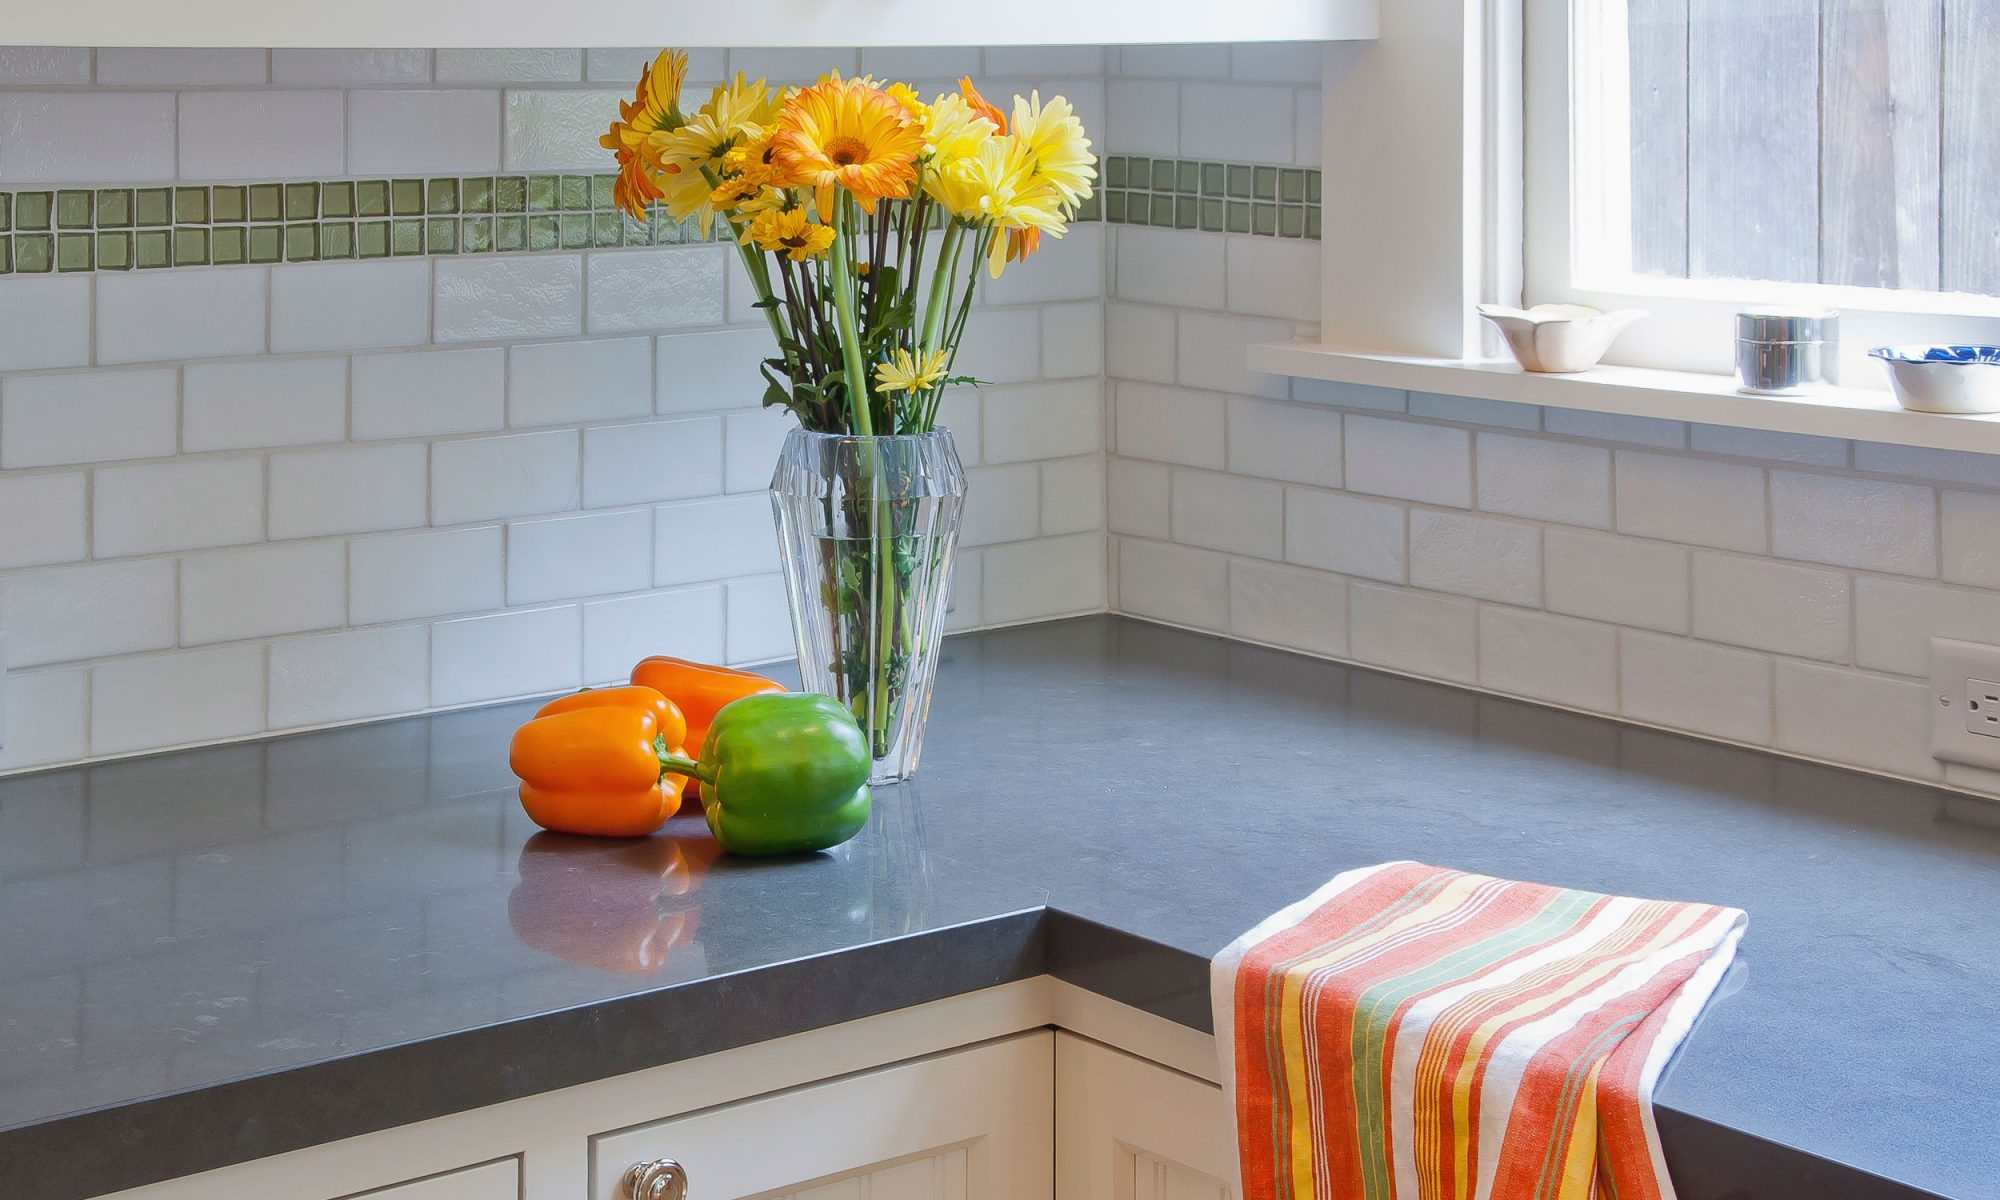 EC: How to Get Lingering Smells Out of Your Kitchen